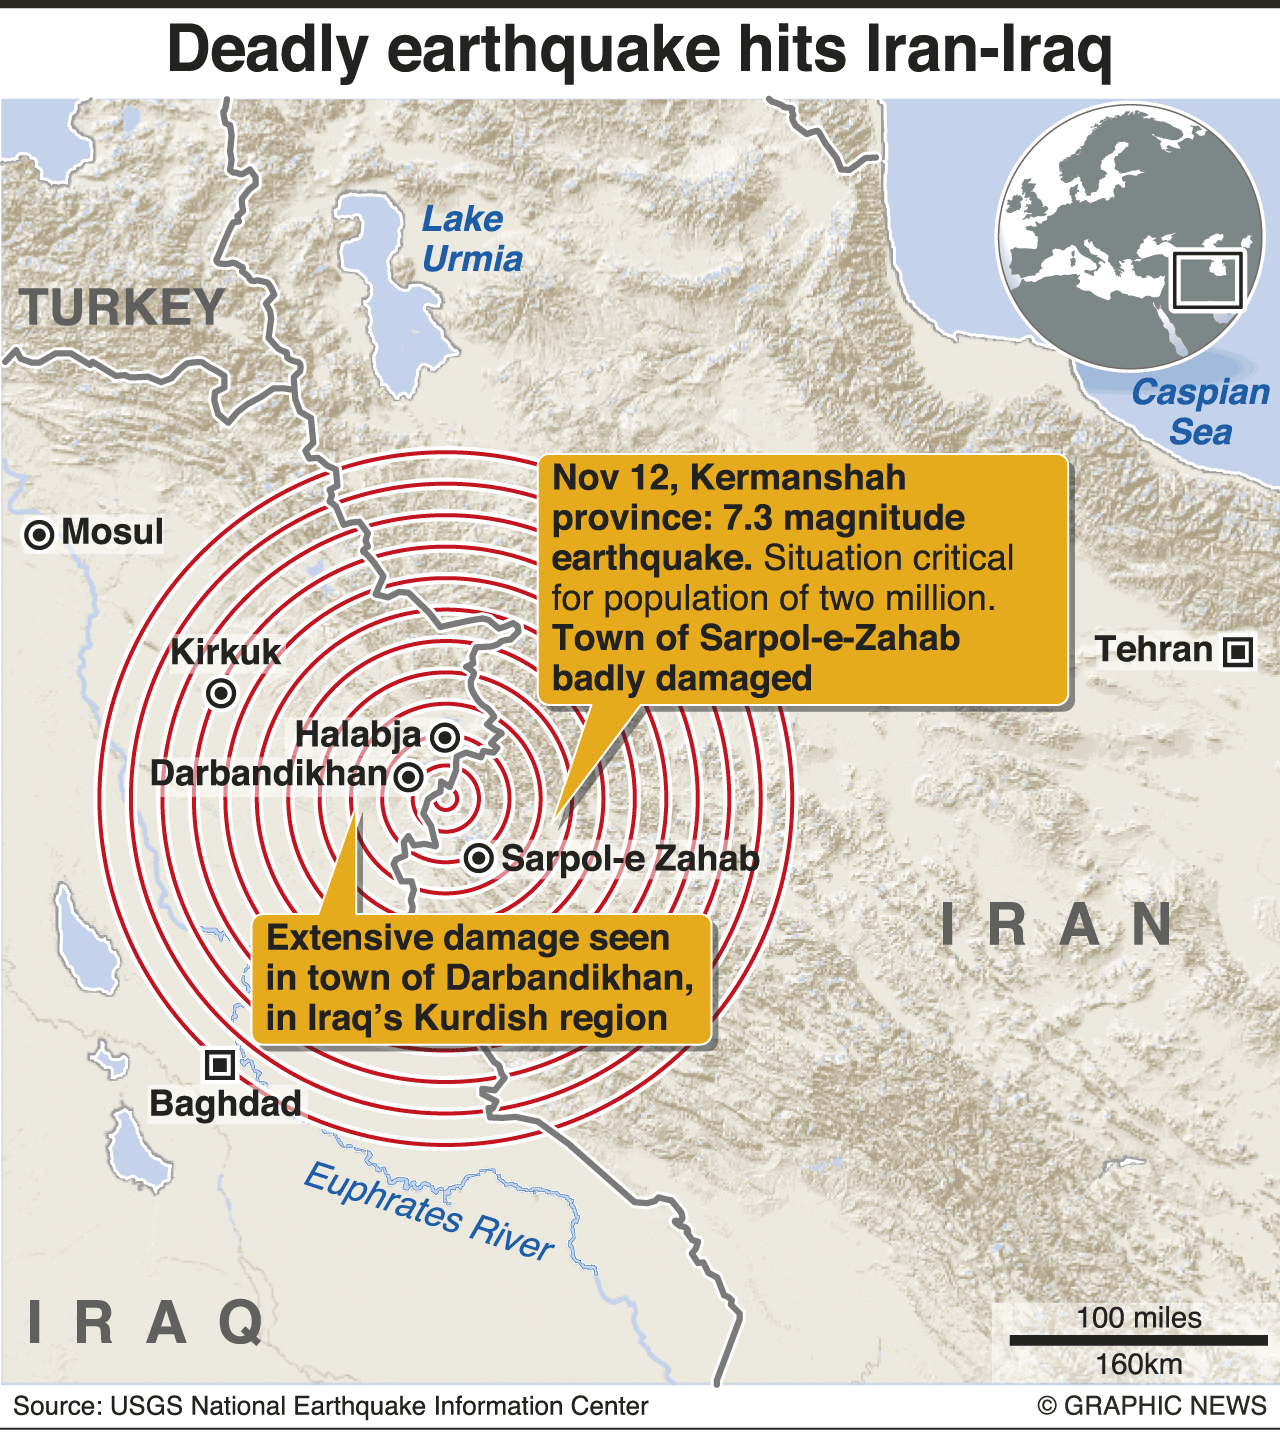 Death toll rises above 300 in iran iraq border earthquake earliermore than 200 people have been killed and 1686 injured in an earthquake along the iran iraq border iranian state tv has said gumiabroncs Choice Image